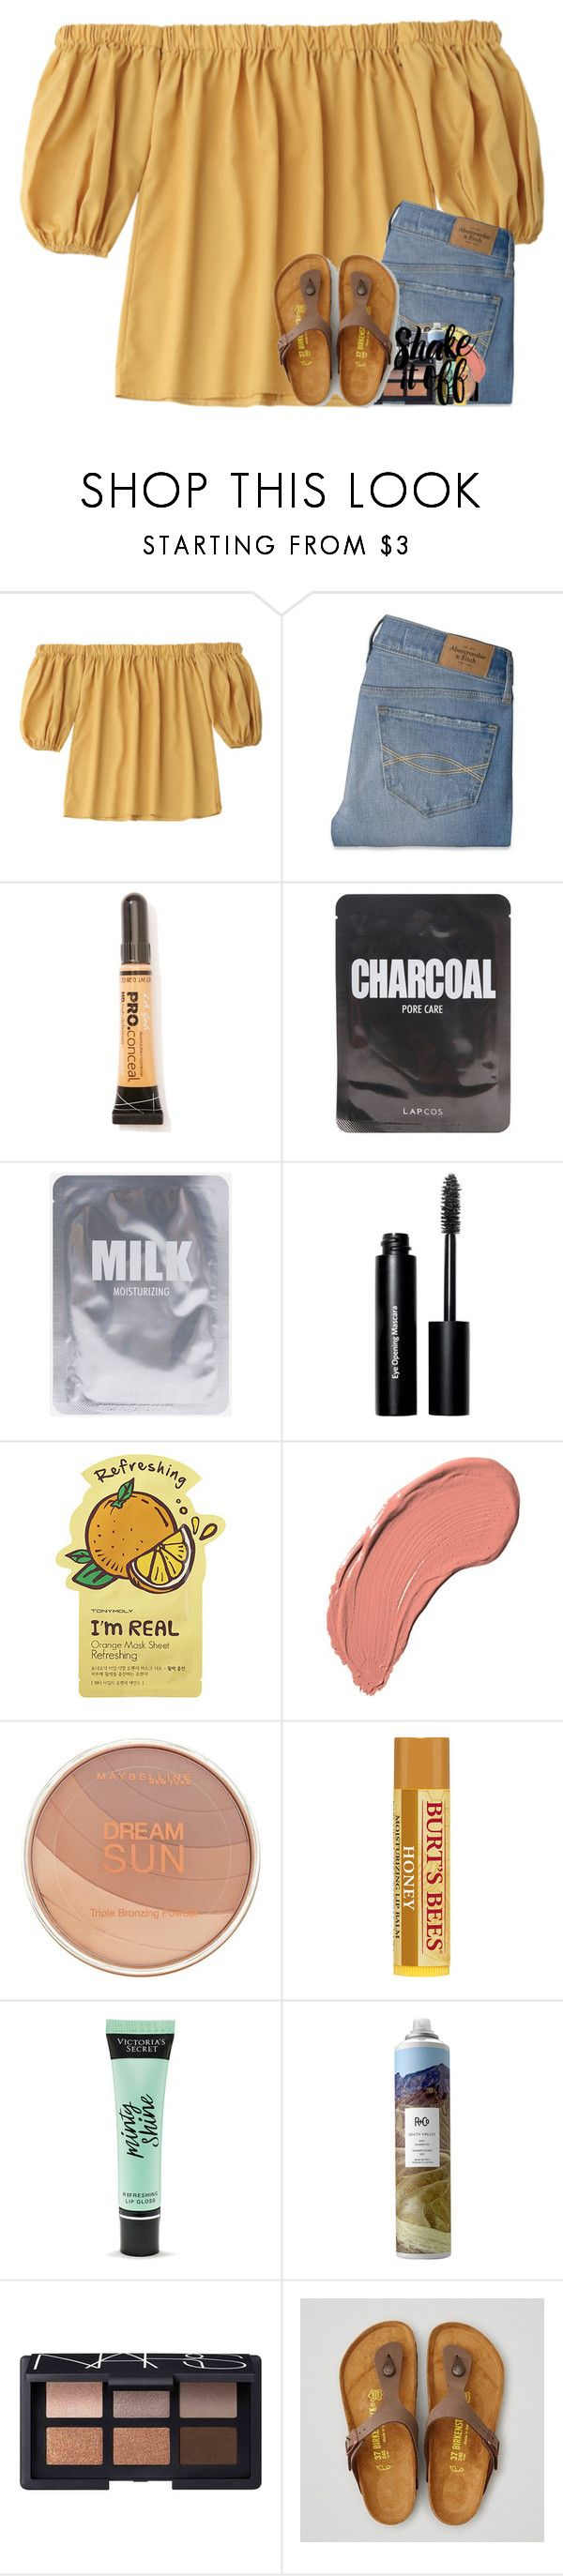 """ugh picture day is tomorrow"" by katie-1111 ❤ liked on Polyvore featuring Abercrombie & Fitch, L.A. Girl, Lapcos, Bobbi Brown Cosmetics, Tony Moly, NYX, Maybelline, Victoria's Secret, R+Co and NARS Cosmetics"